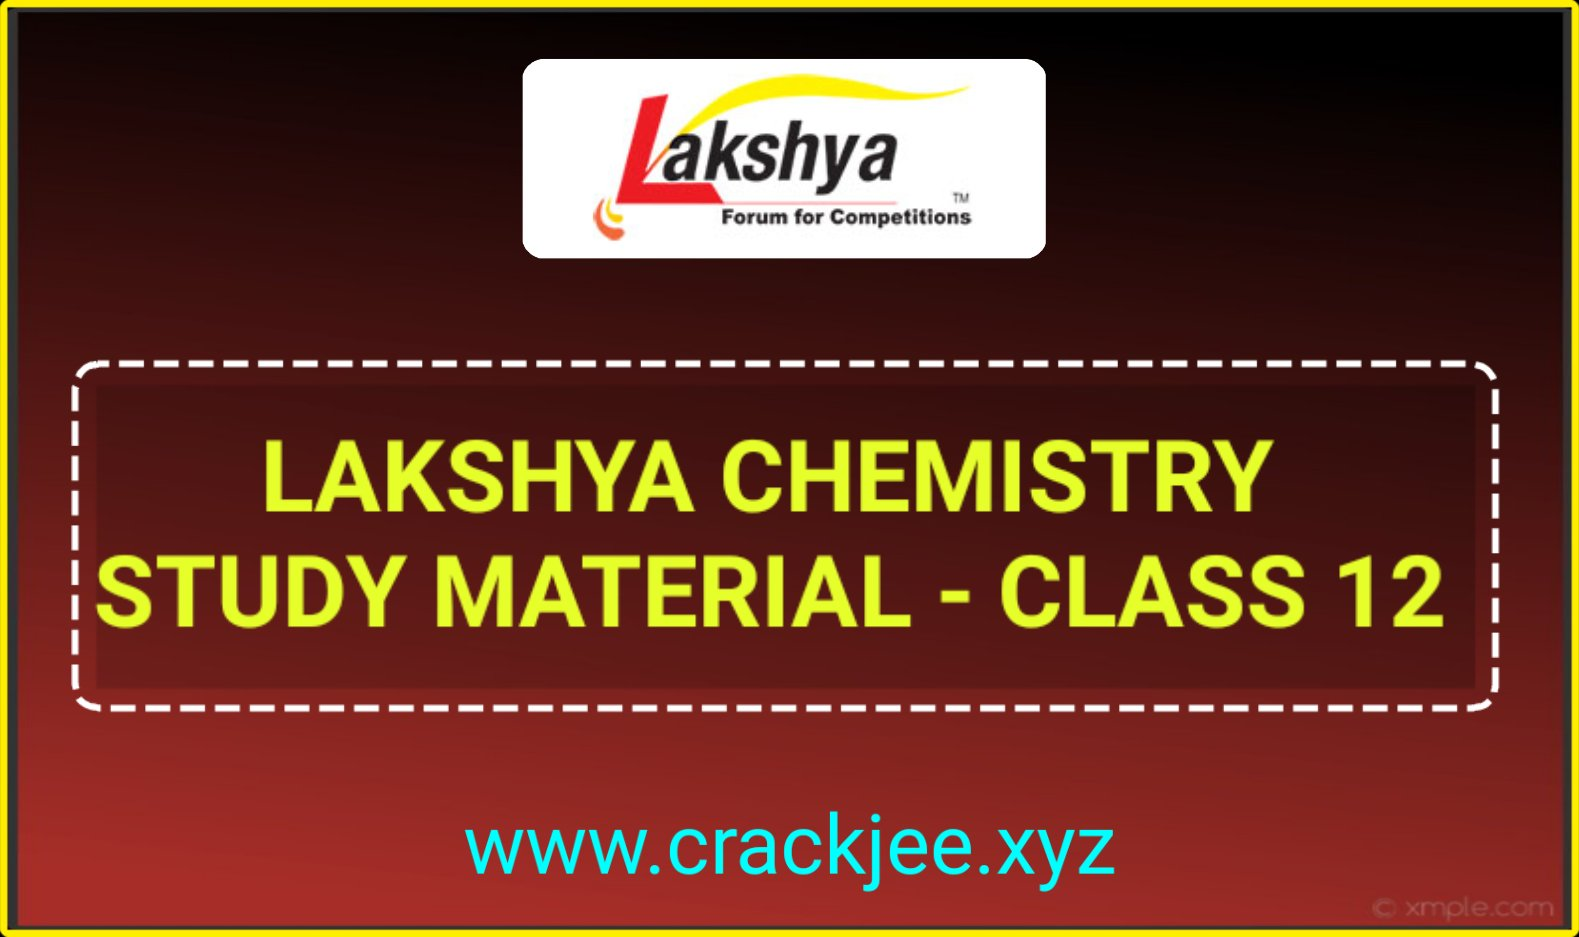 Lakshya Robomate Class 12 Chemistry Study Material